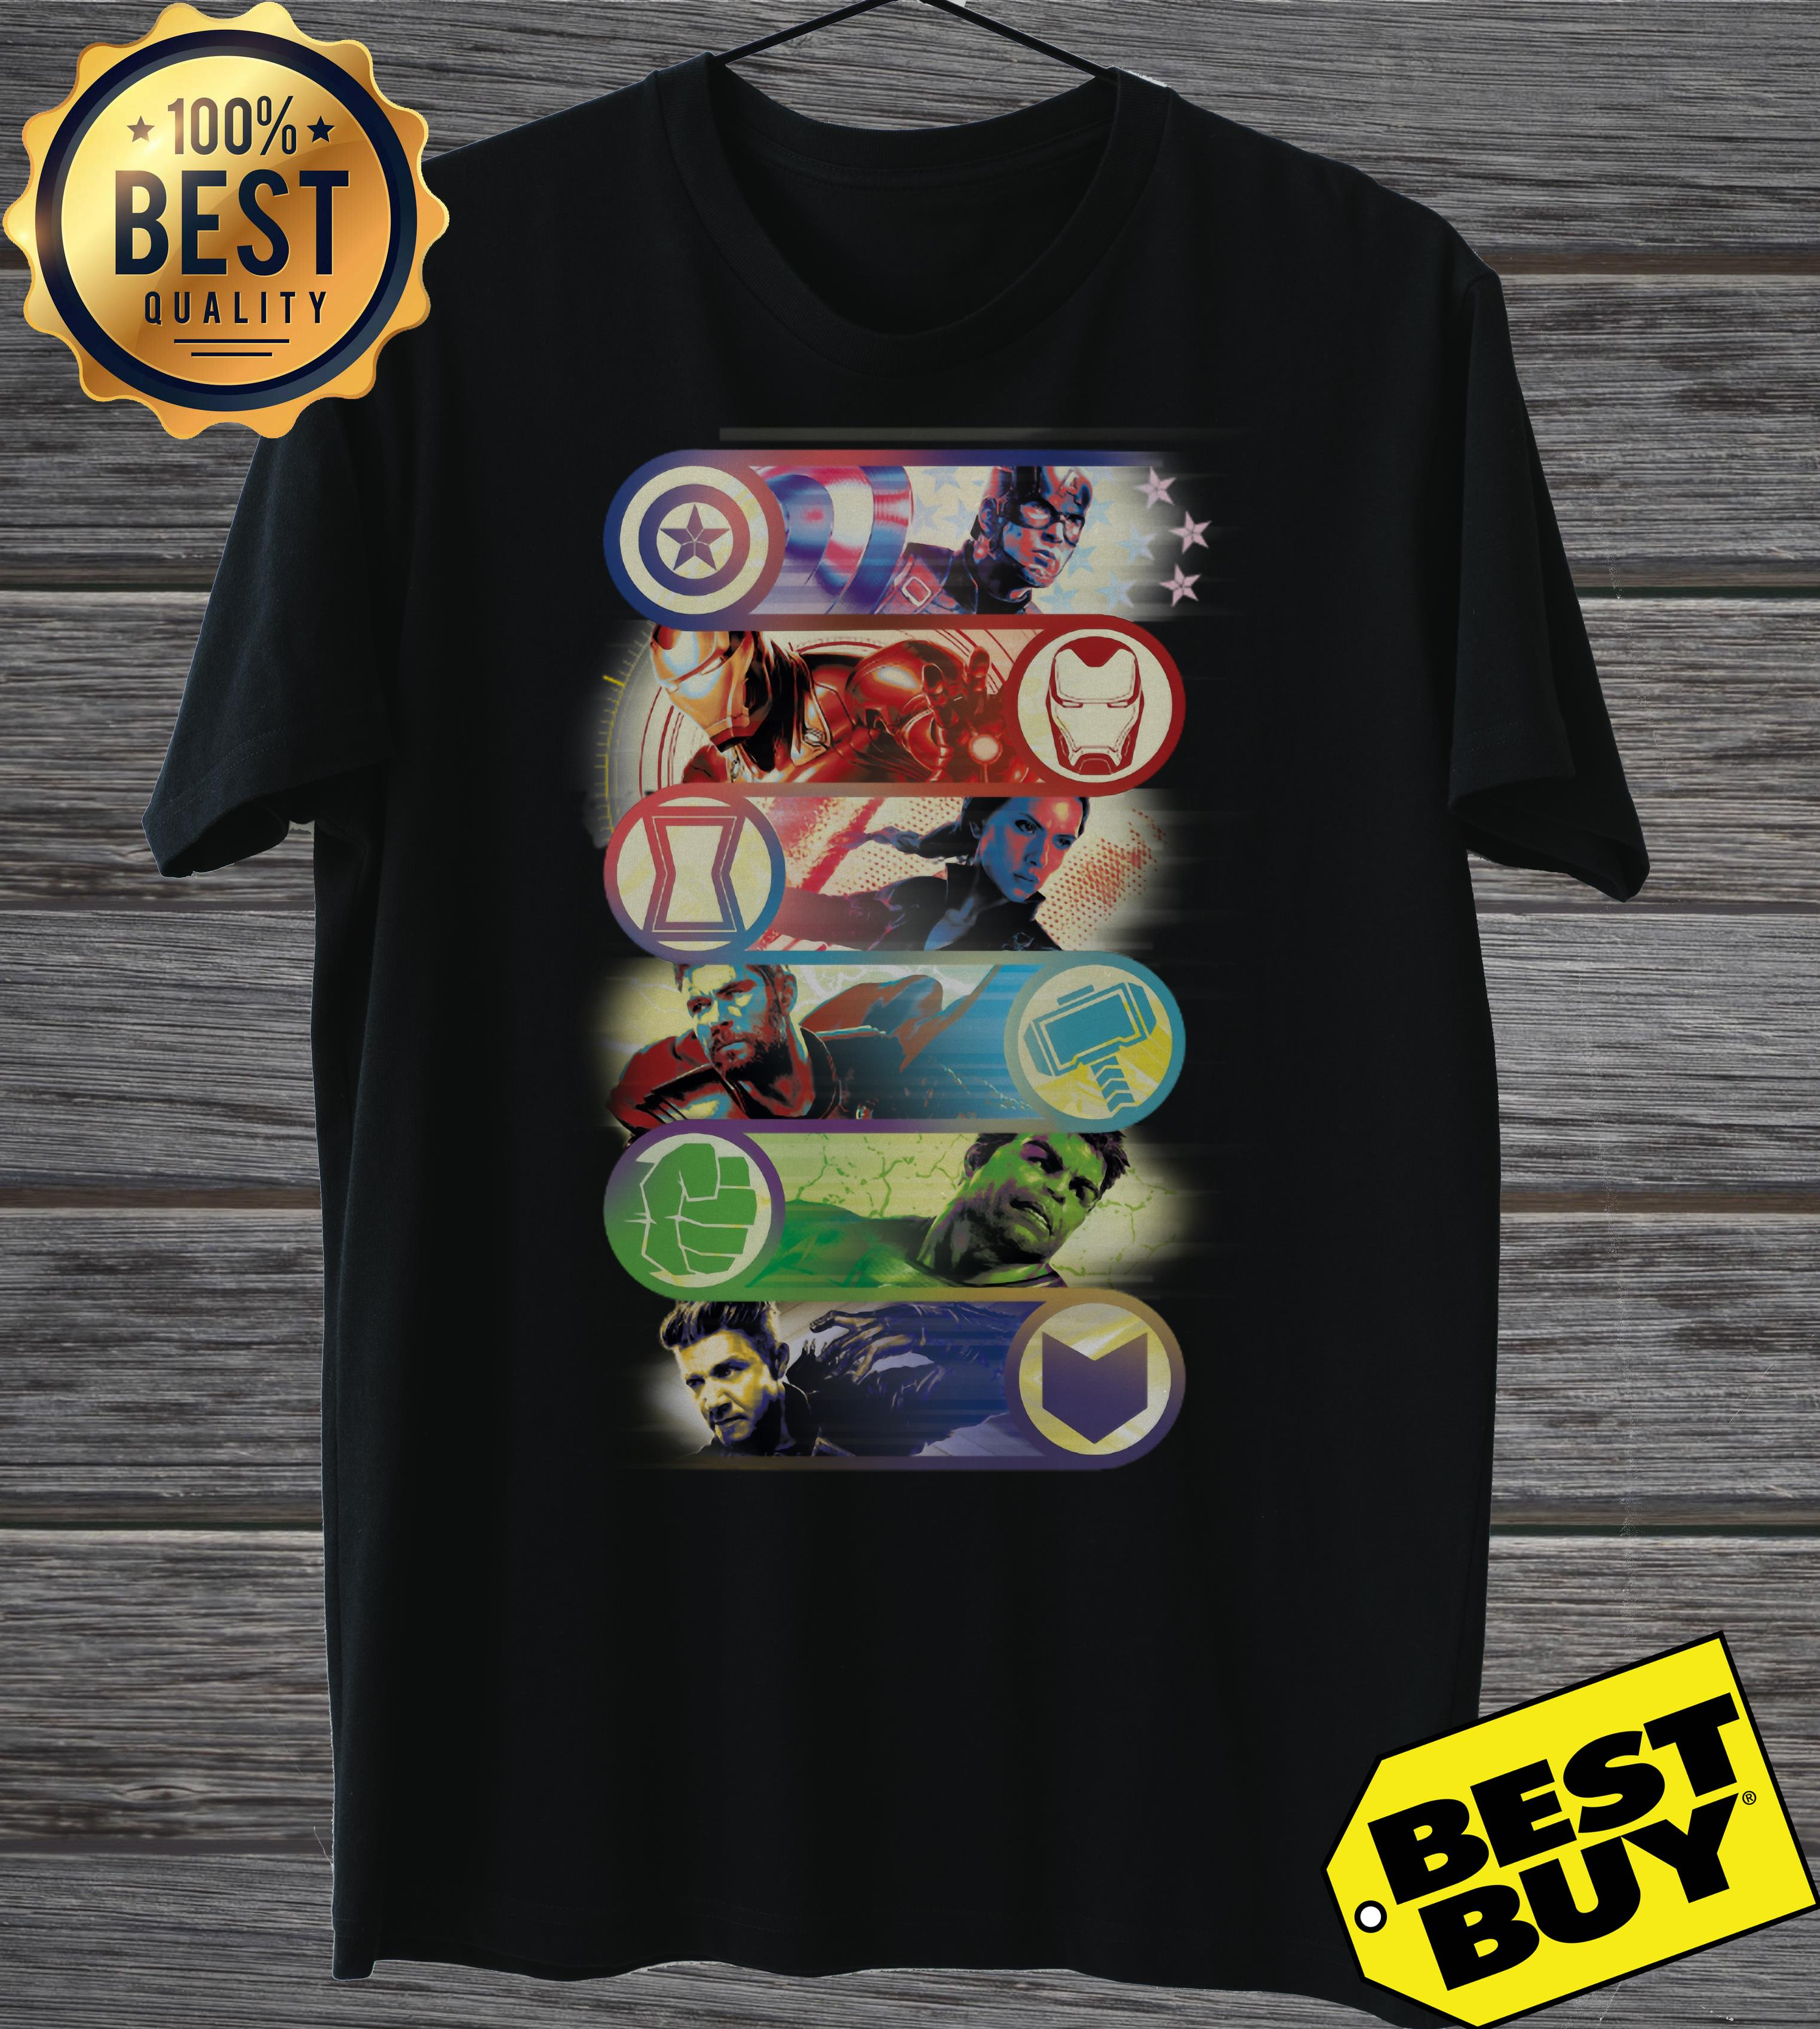 Avengers Endgame Captain America Iron Man Black Widow Thor Hulk Hawkeye One Last Fight Ladies Tee